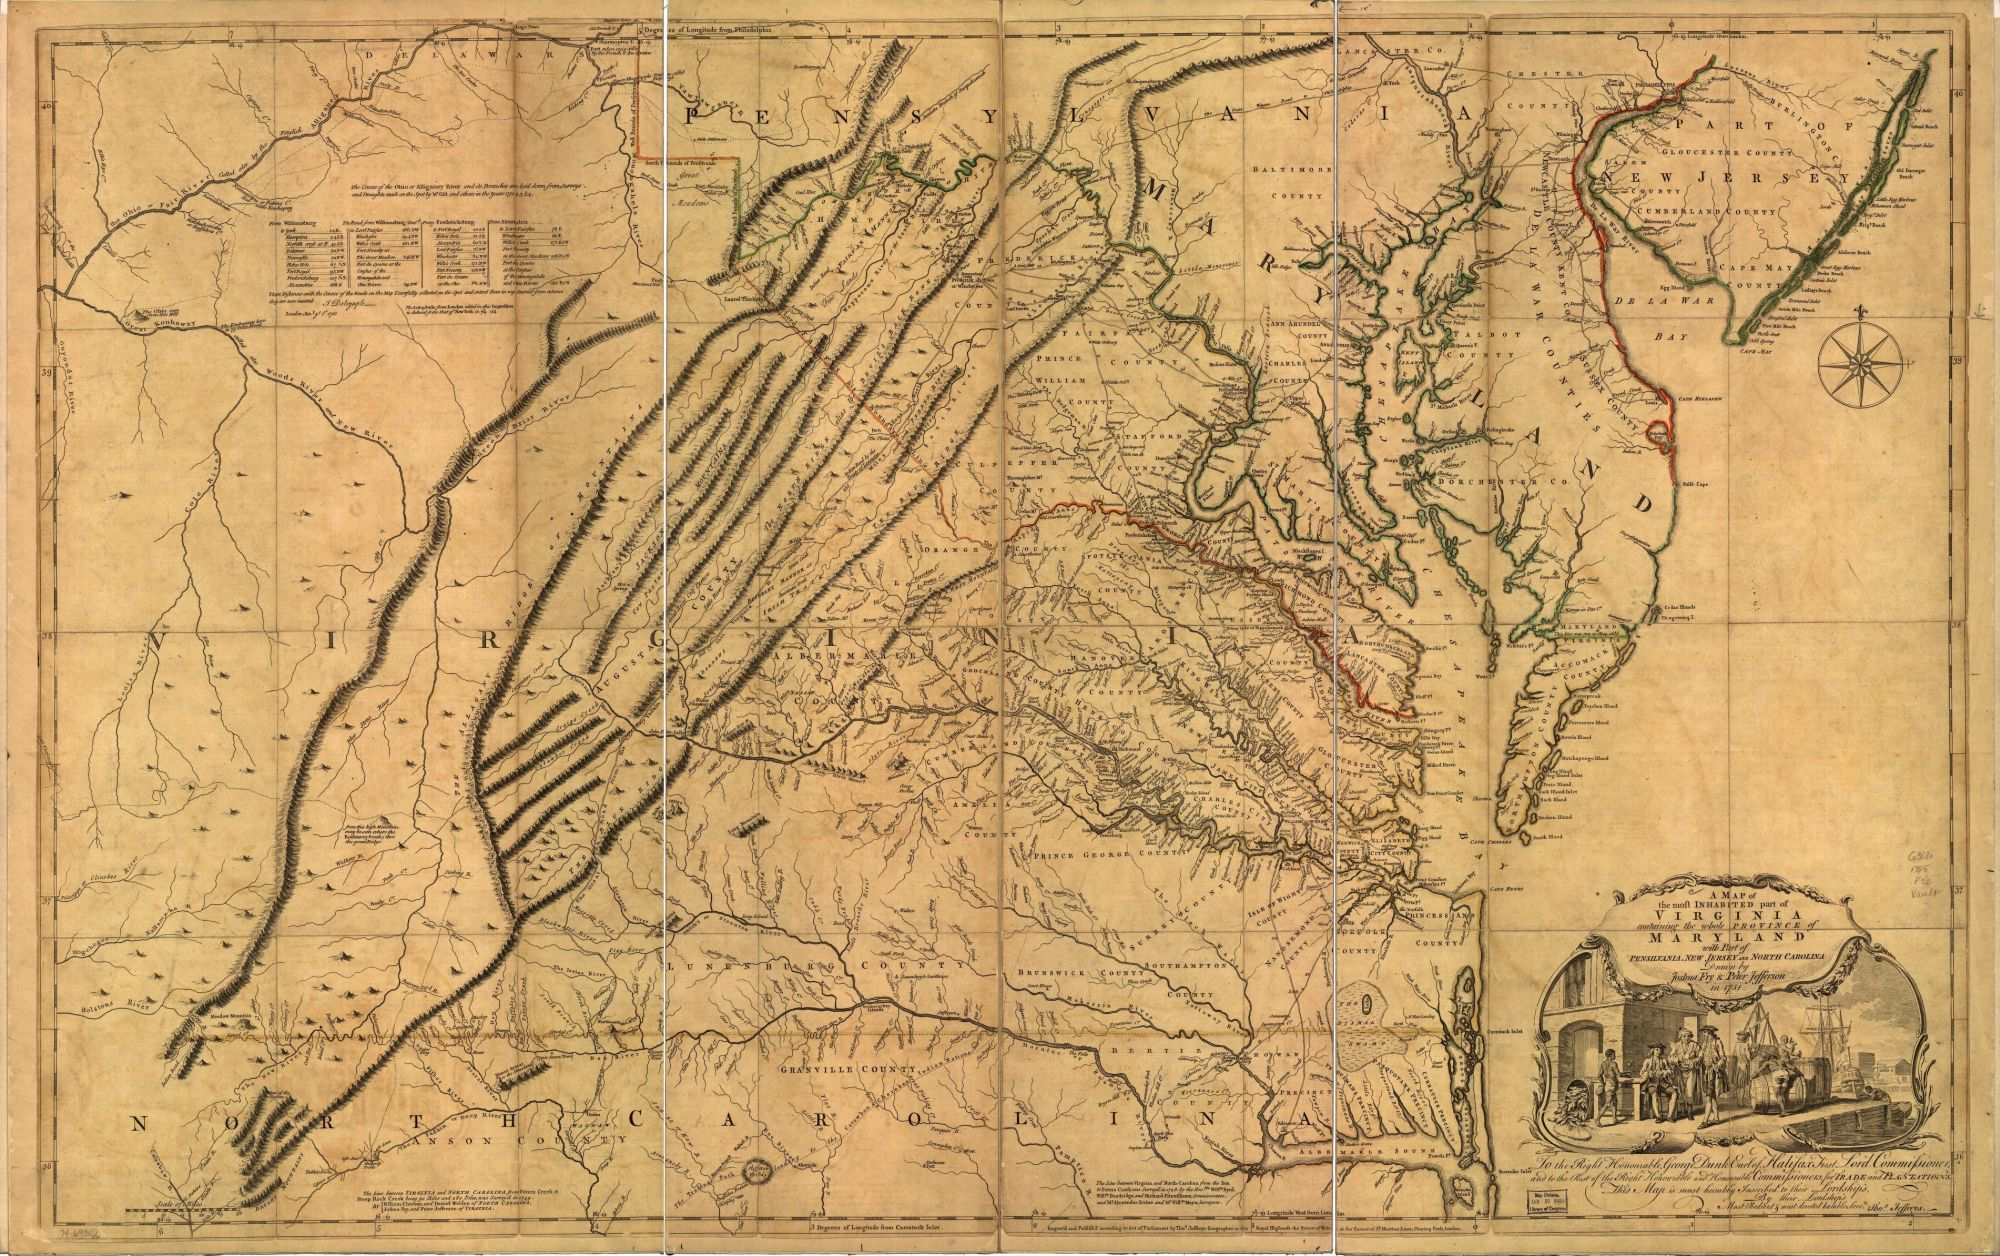 The researchers were stunned when the Duke handed them a map of Virginia from 1751. They instantly realized it was one of only three copies in existence of the most famous map of Virigina, surveyed and drawn by Roger Fry and Peter Jefferson, the father of Thomas Jefferson. A later edition of the map (above) is held by the Library of Congress.